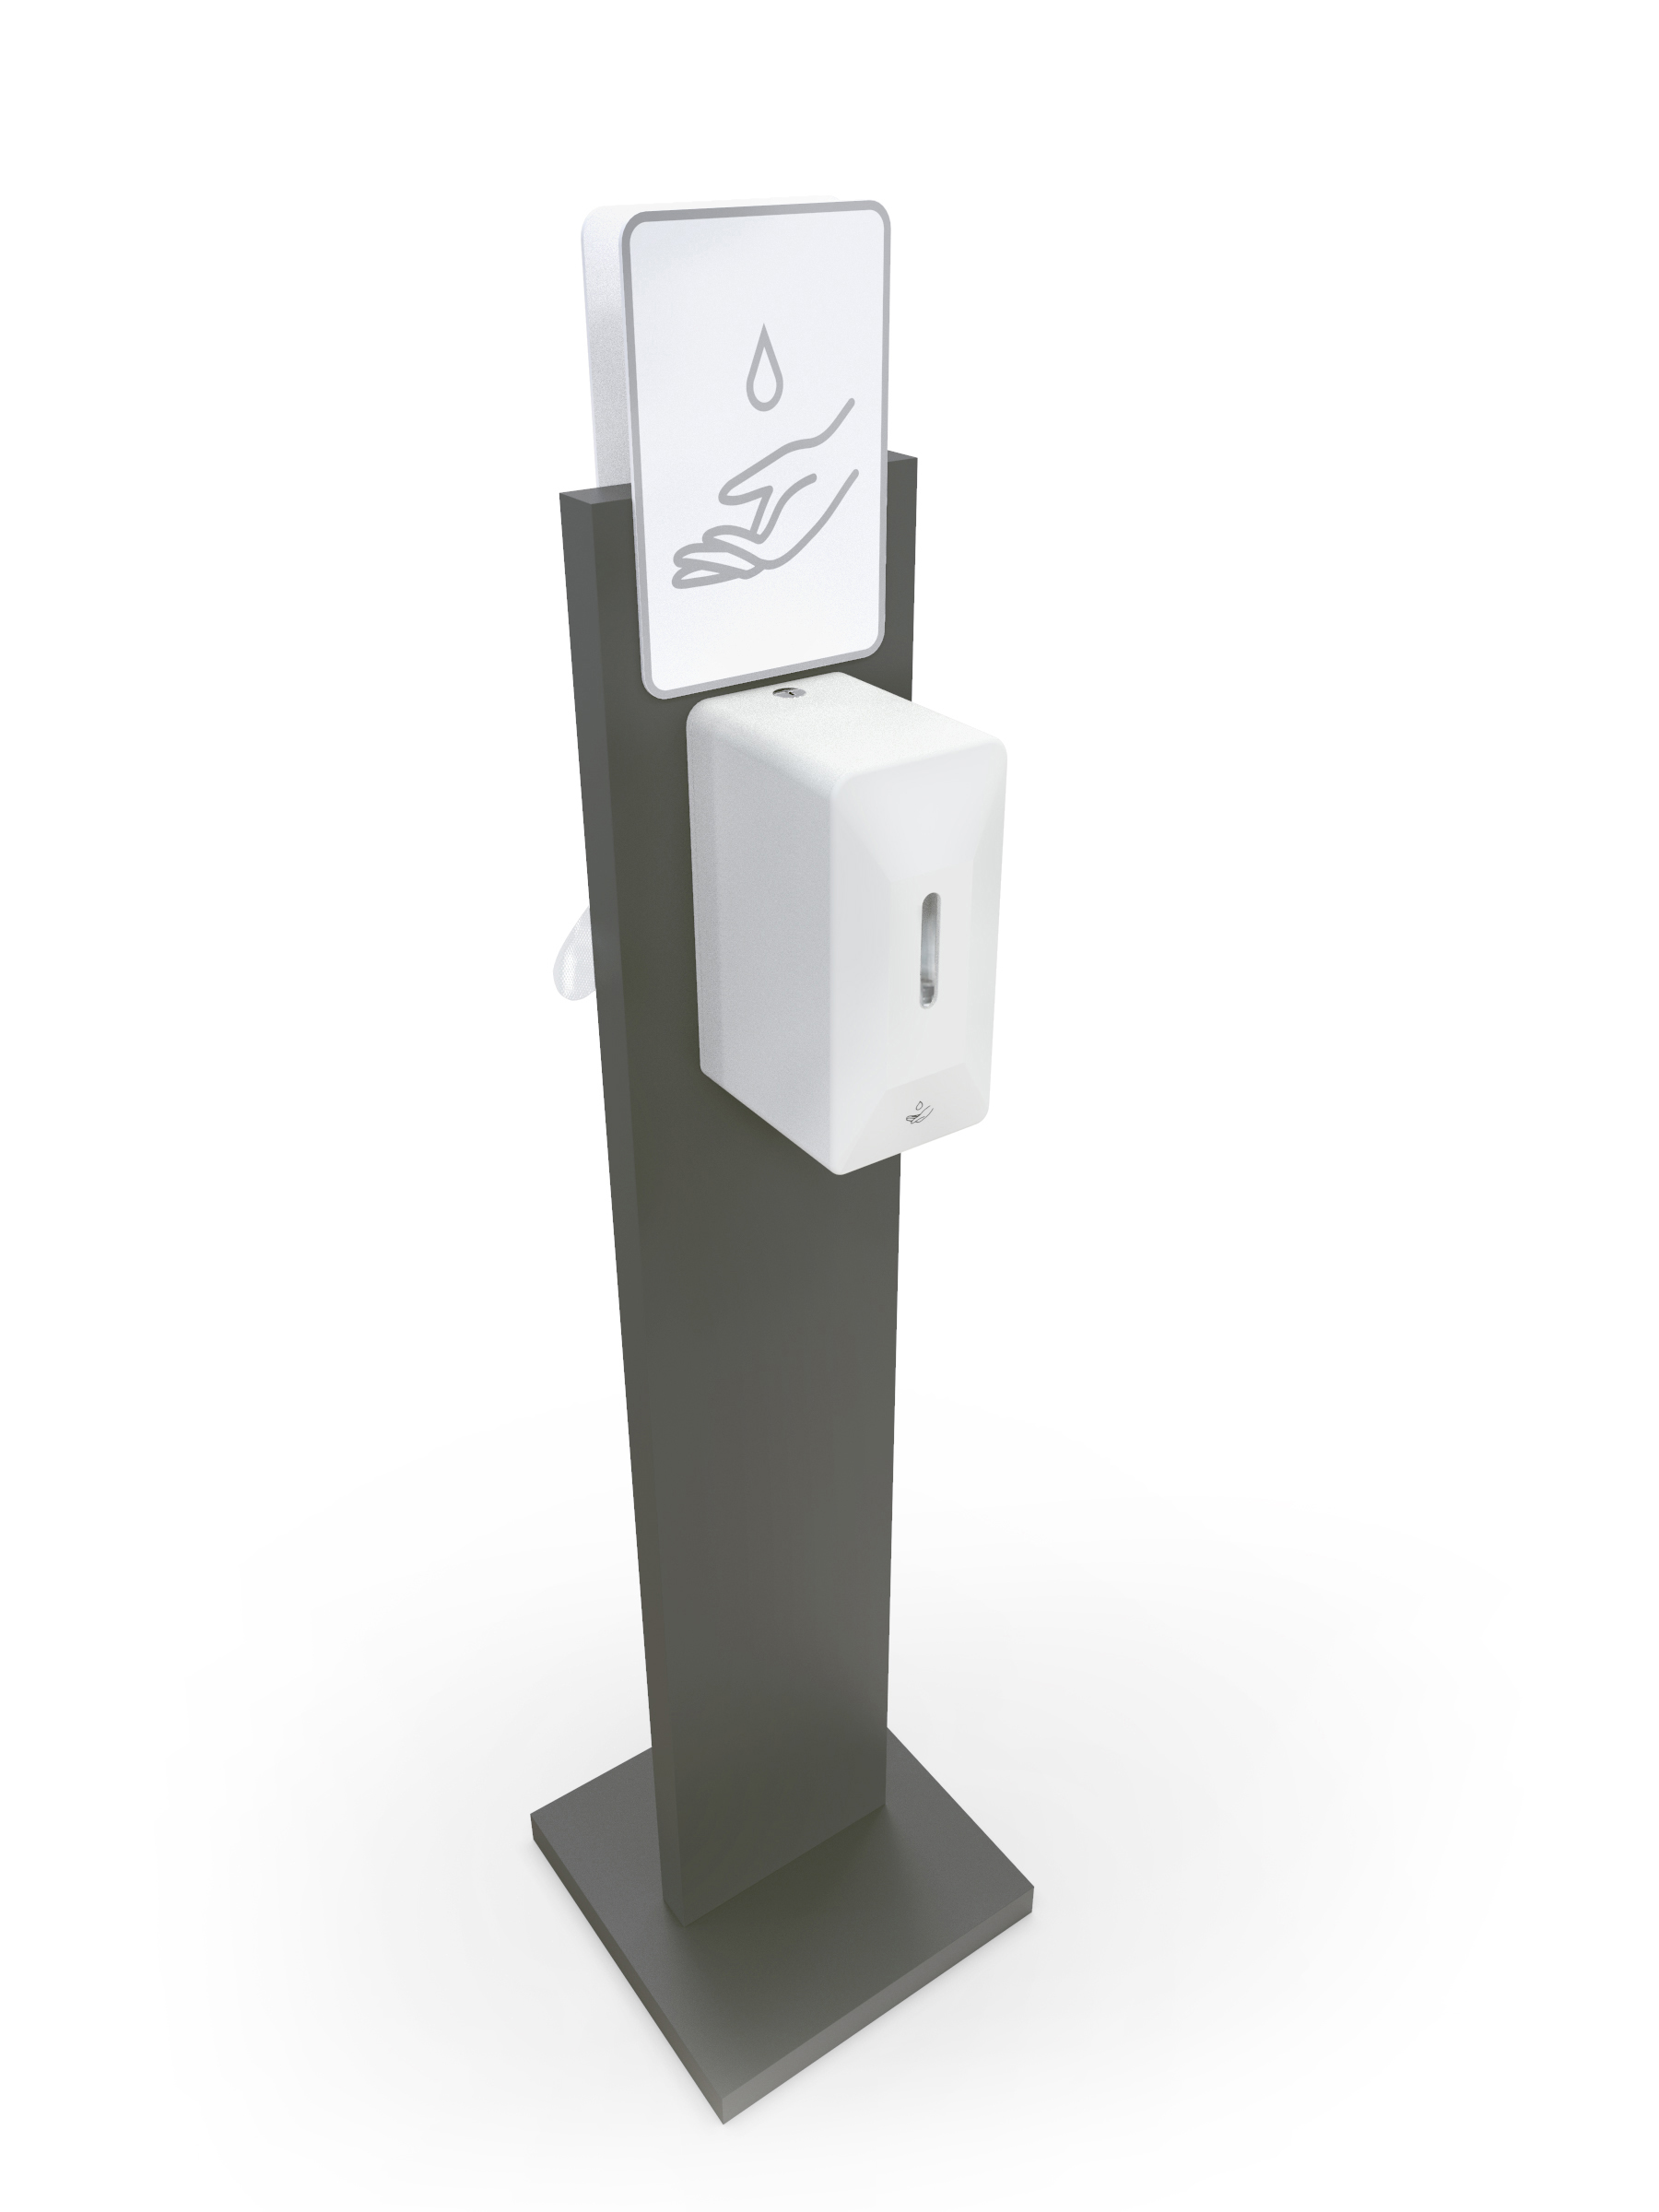 Freestanding Metal Automatic Hand Sanitiser Station- Coronavirus Covid19 Essentials www.ontimeprint.co.uk